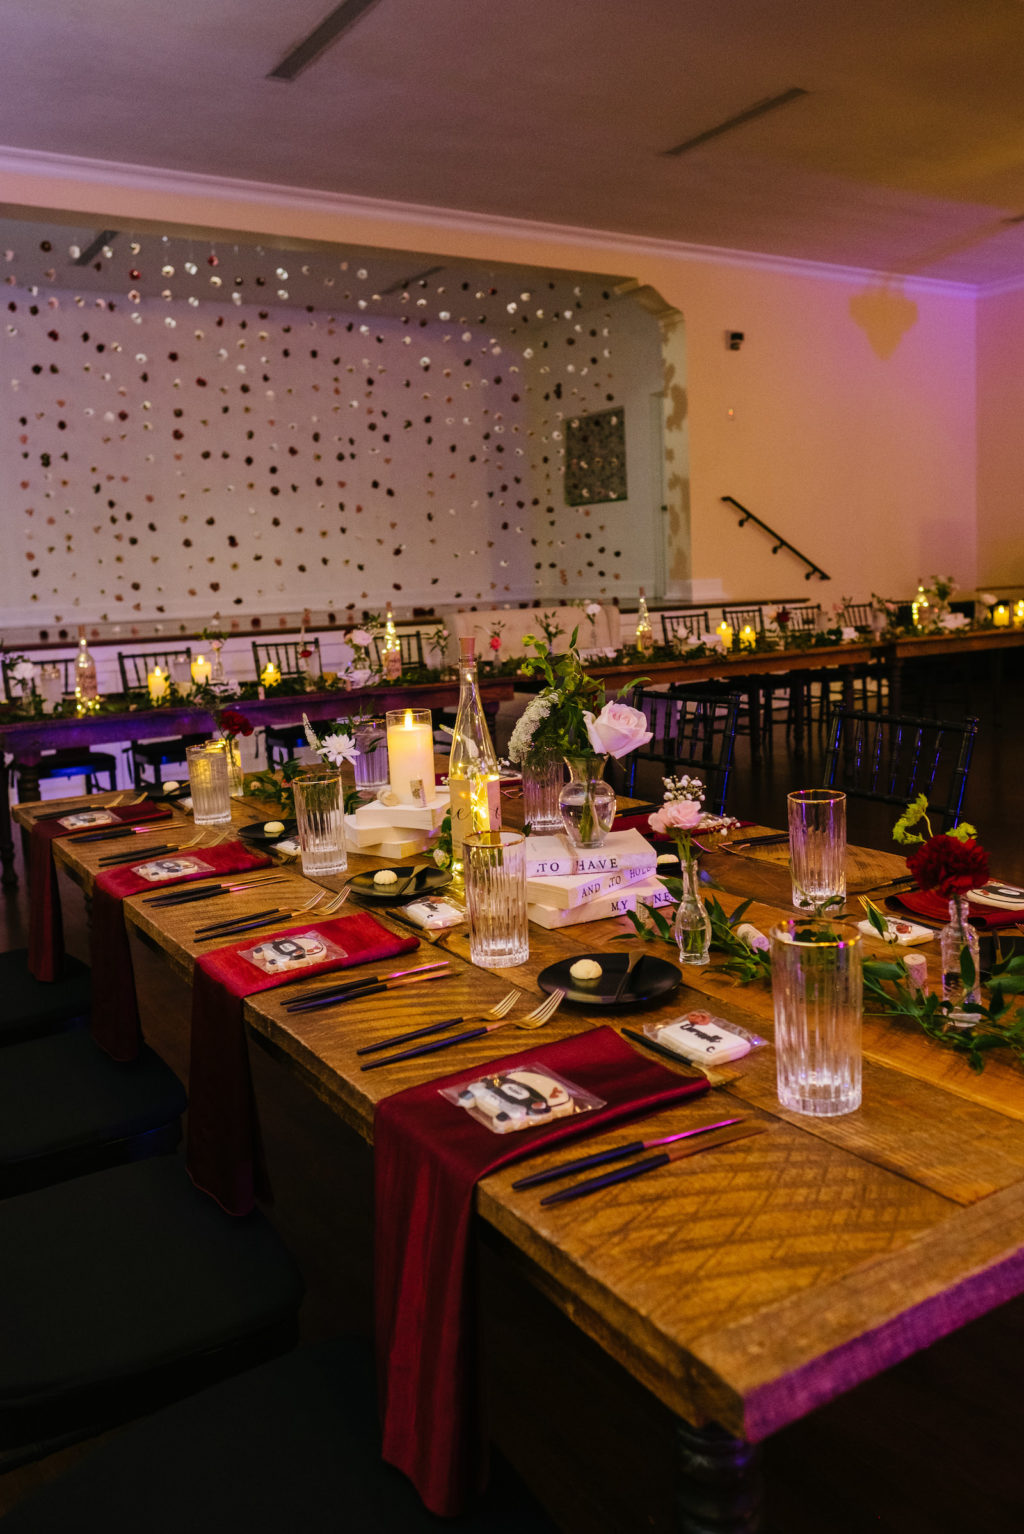 Vintage Red Wedding Reception Decor with Wooden Farm Table